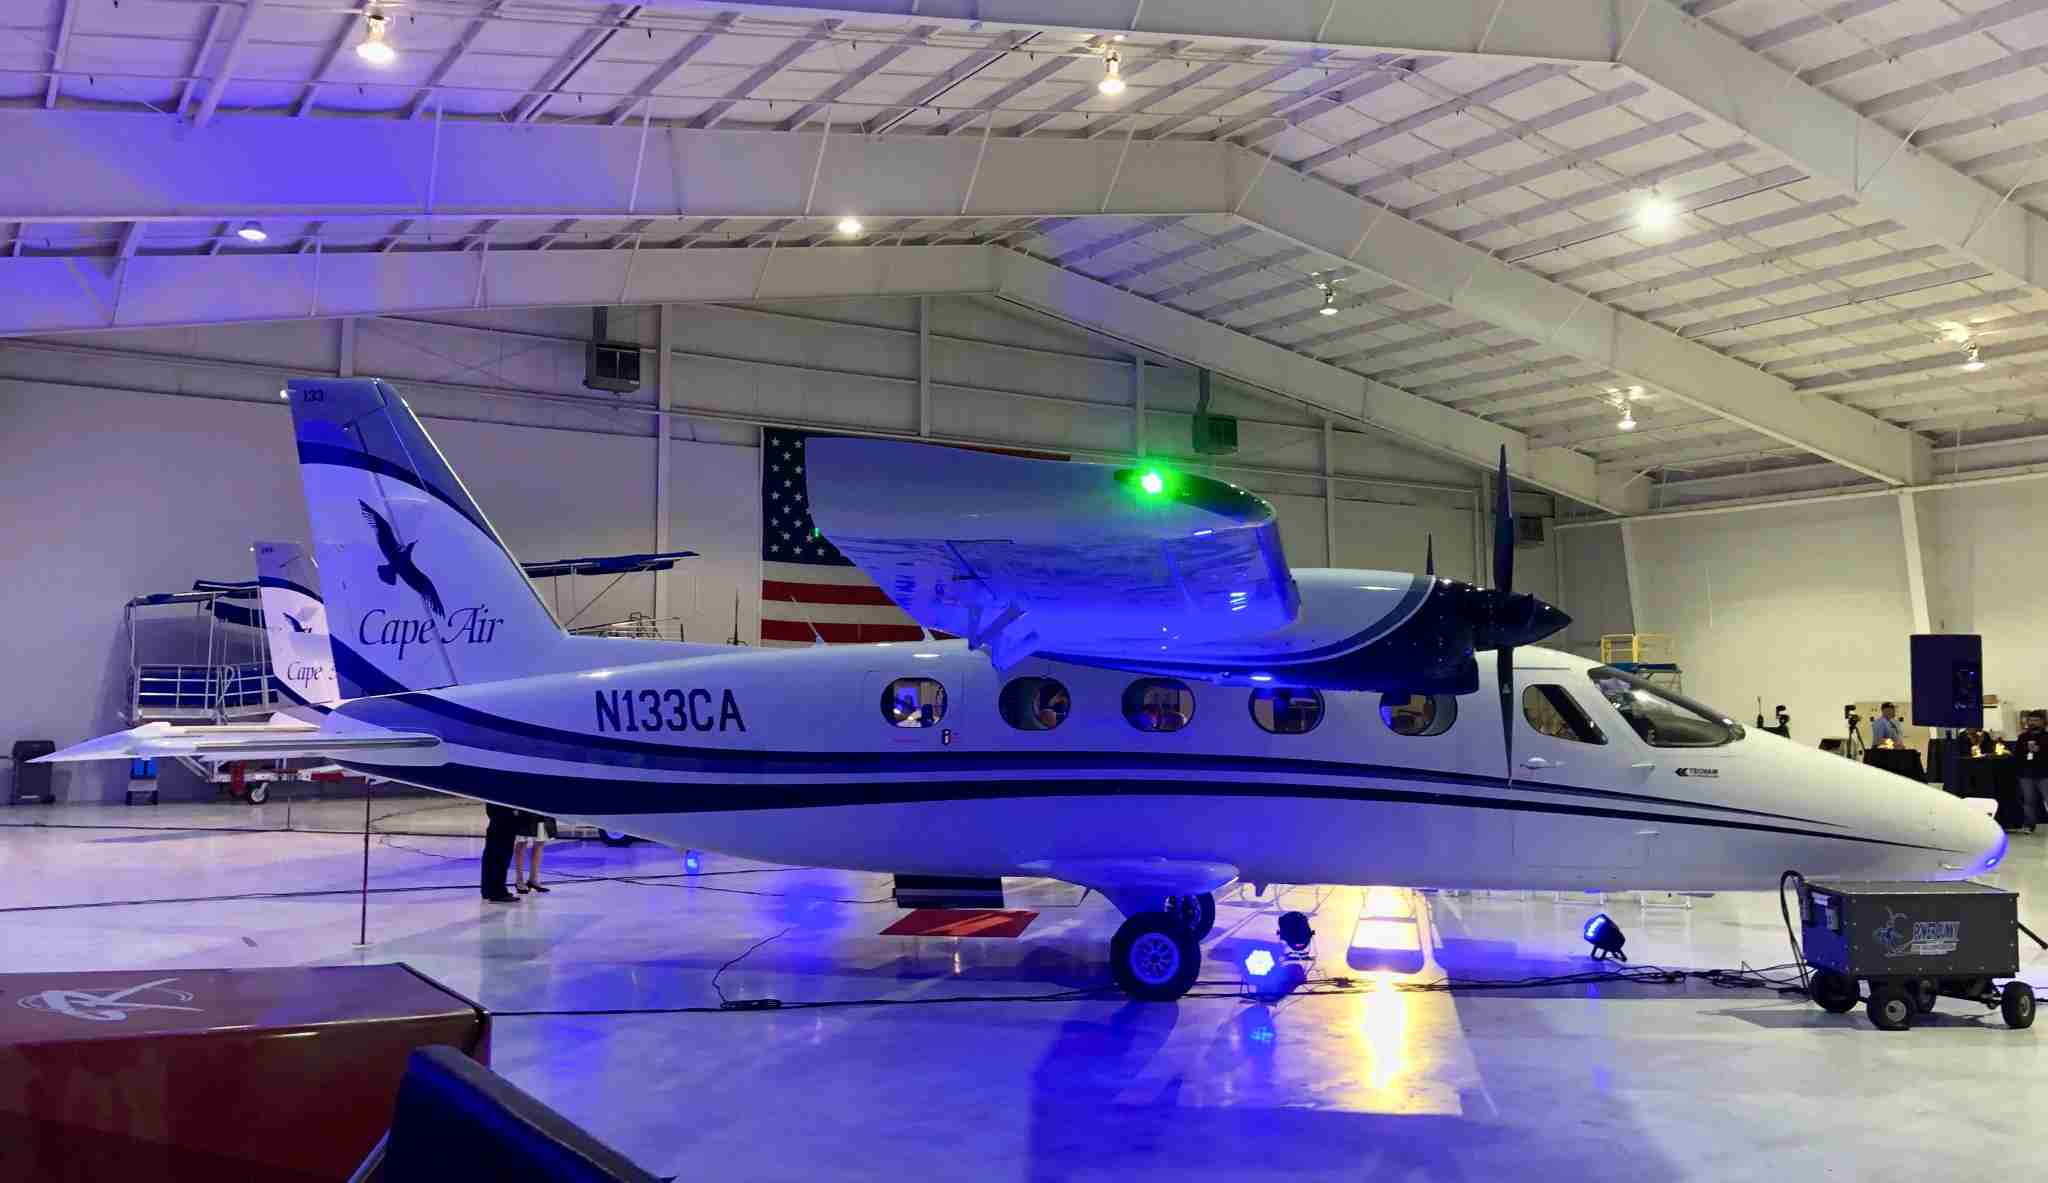 Cape Air showed off its first two Tecnam P2012 Travellers at an event at Barnstable Municipal Airport on Oct. 16. (Photo by Edward Russell/TPG)